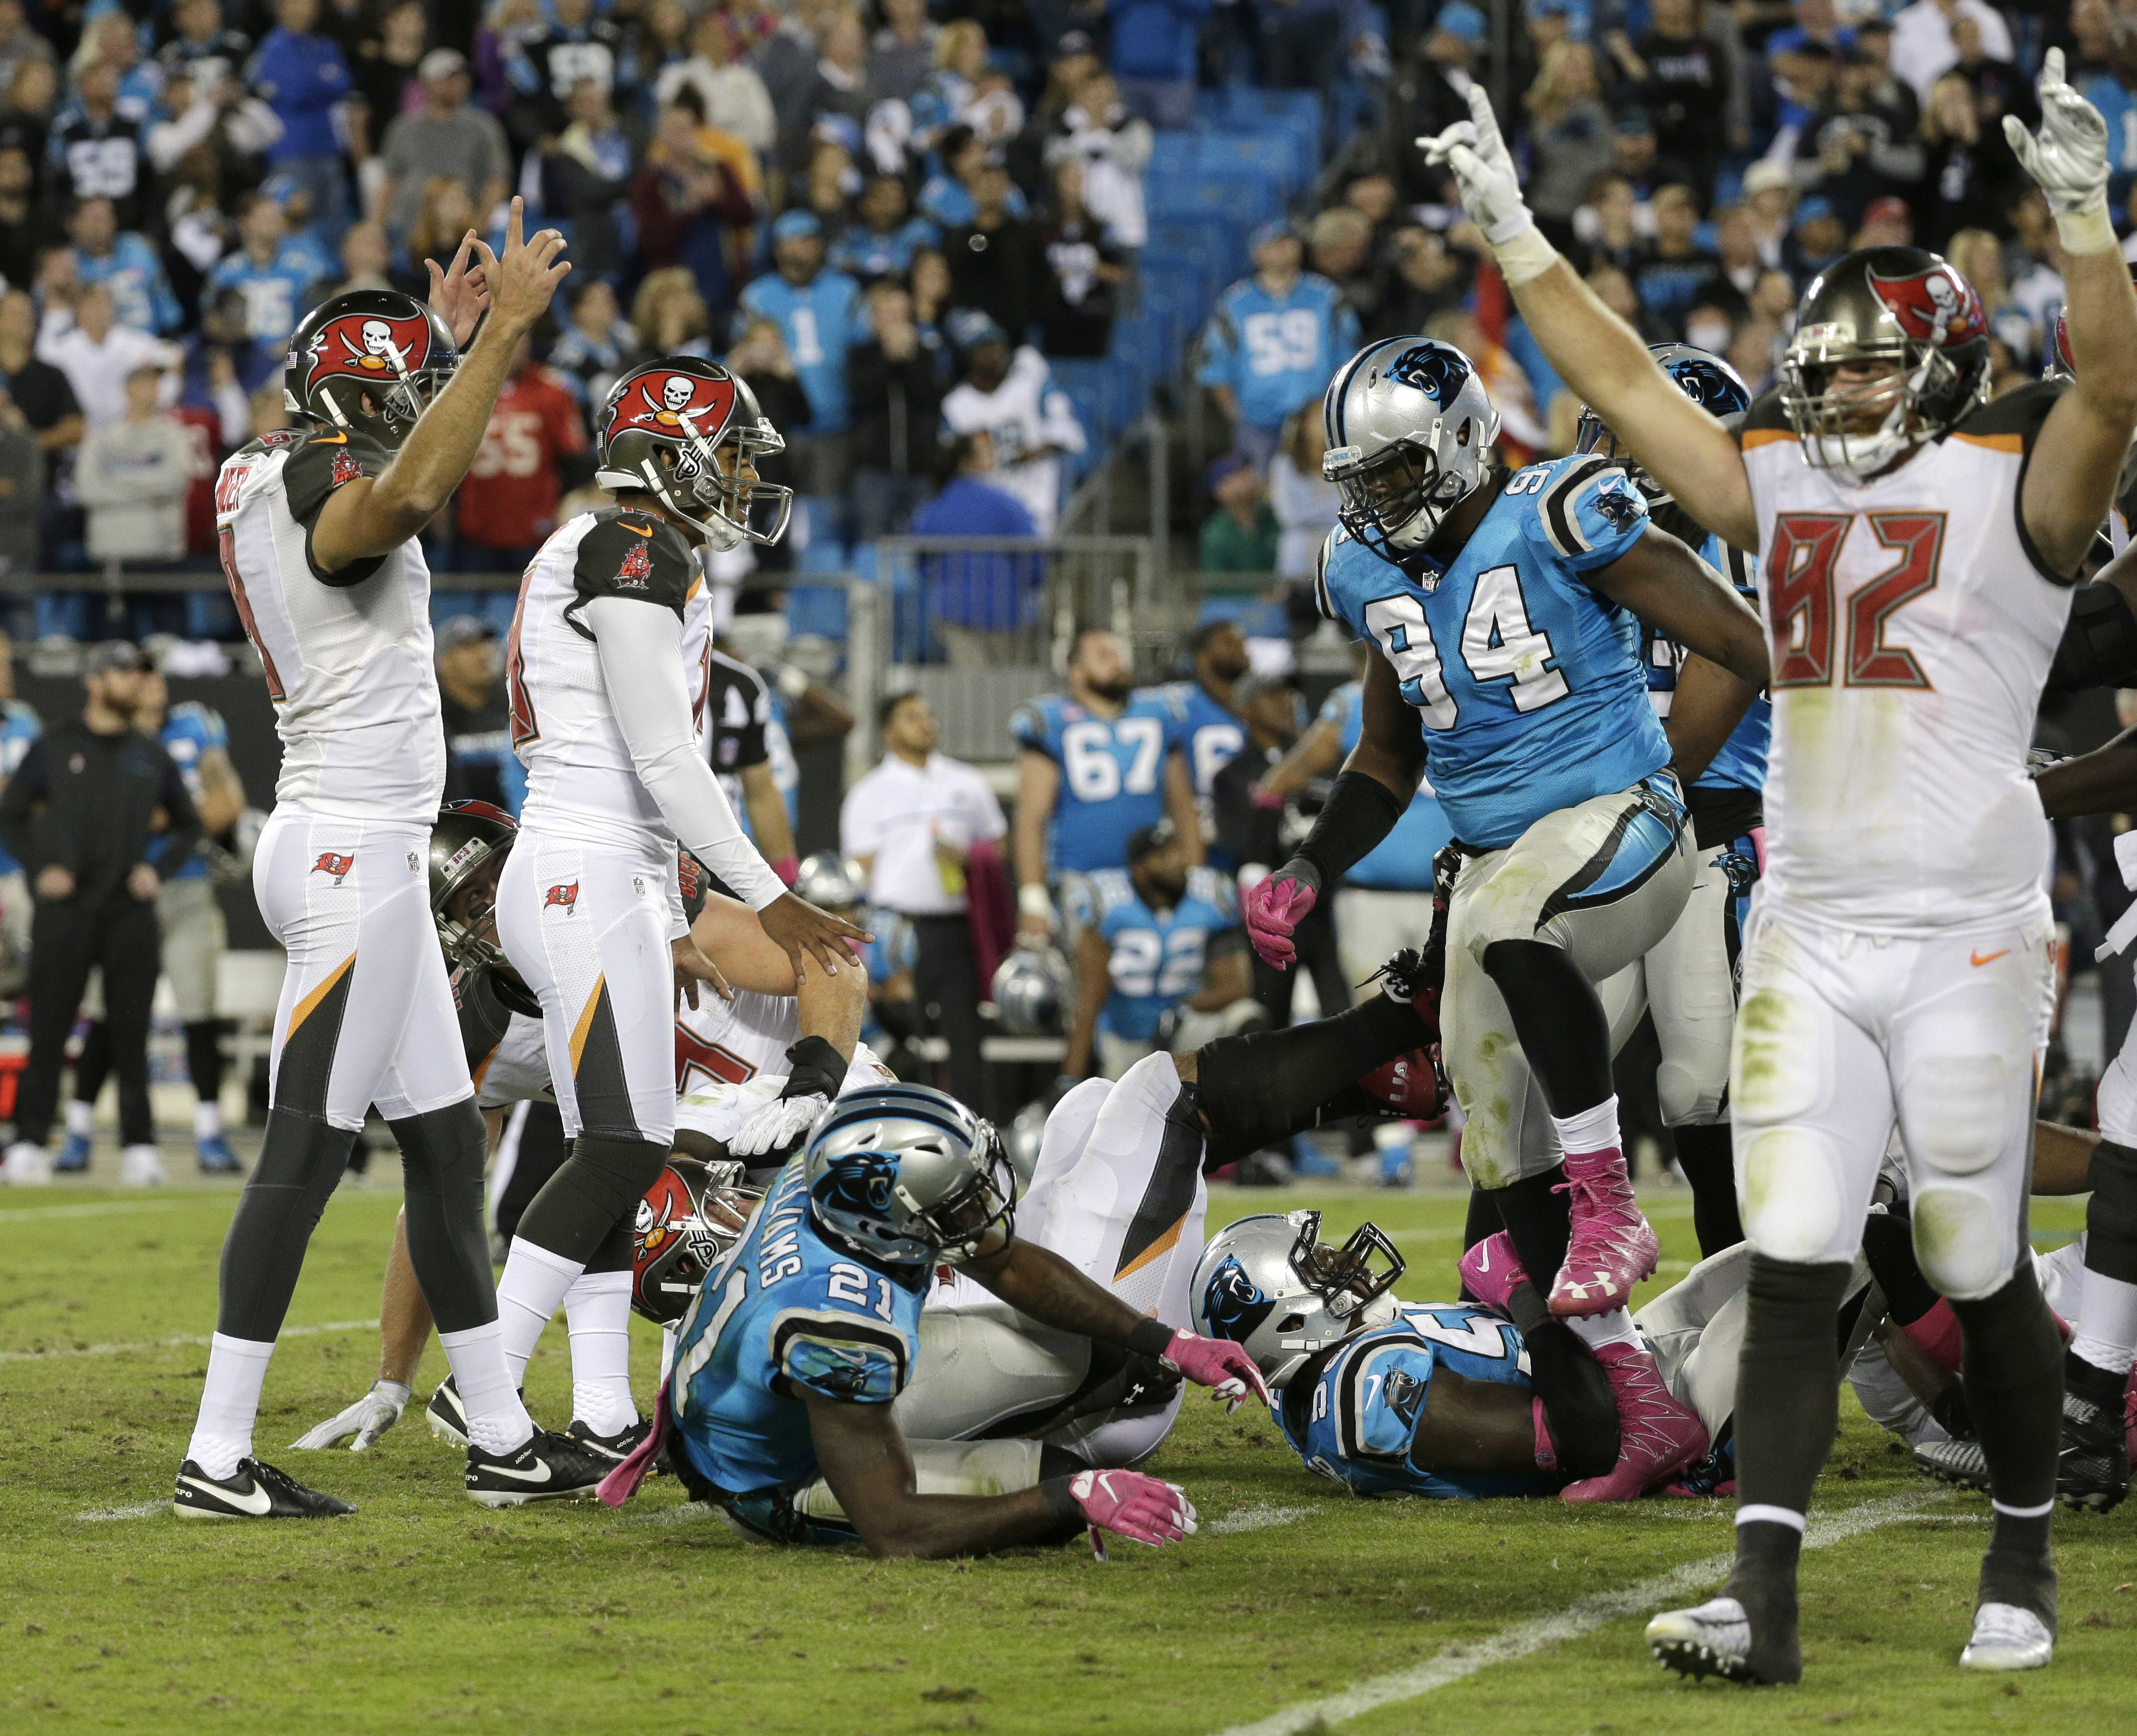 Tampa Bay Buccaneers players celebrate after Roberto Aguayo's game-winning kick against the Carolina Panthers in the second half of an NFL football game in Charlotte, N.C., Monday, Oct. 10, 2016. (AP Photo/Chuck Burton)